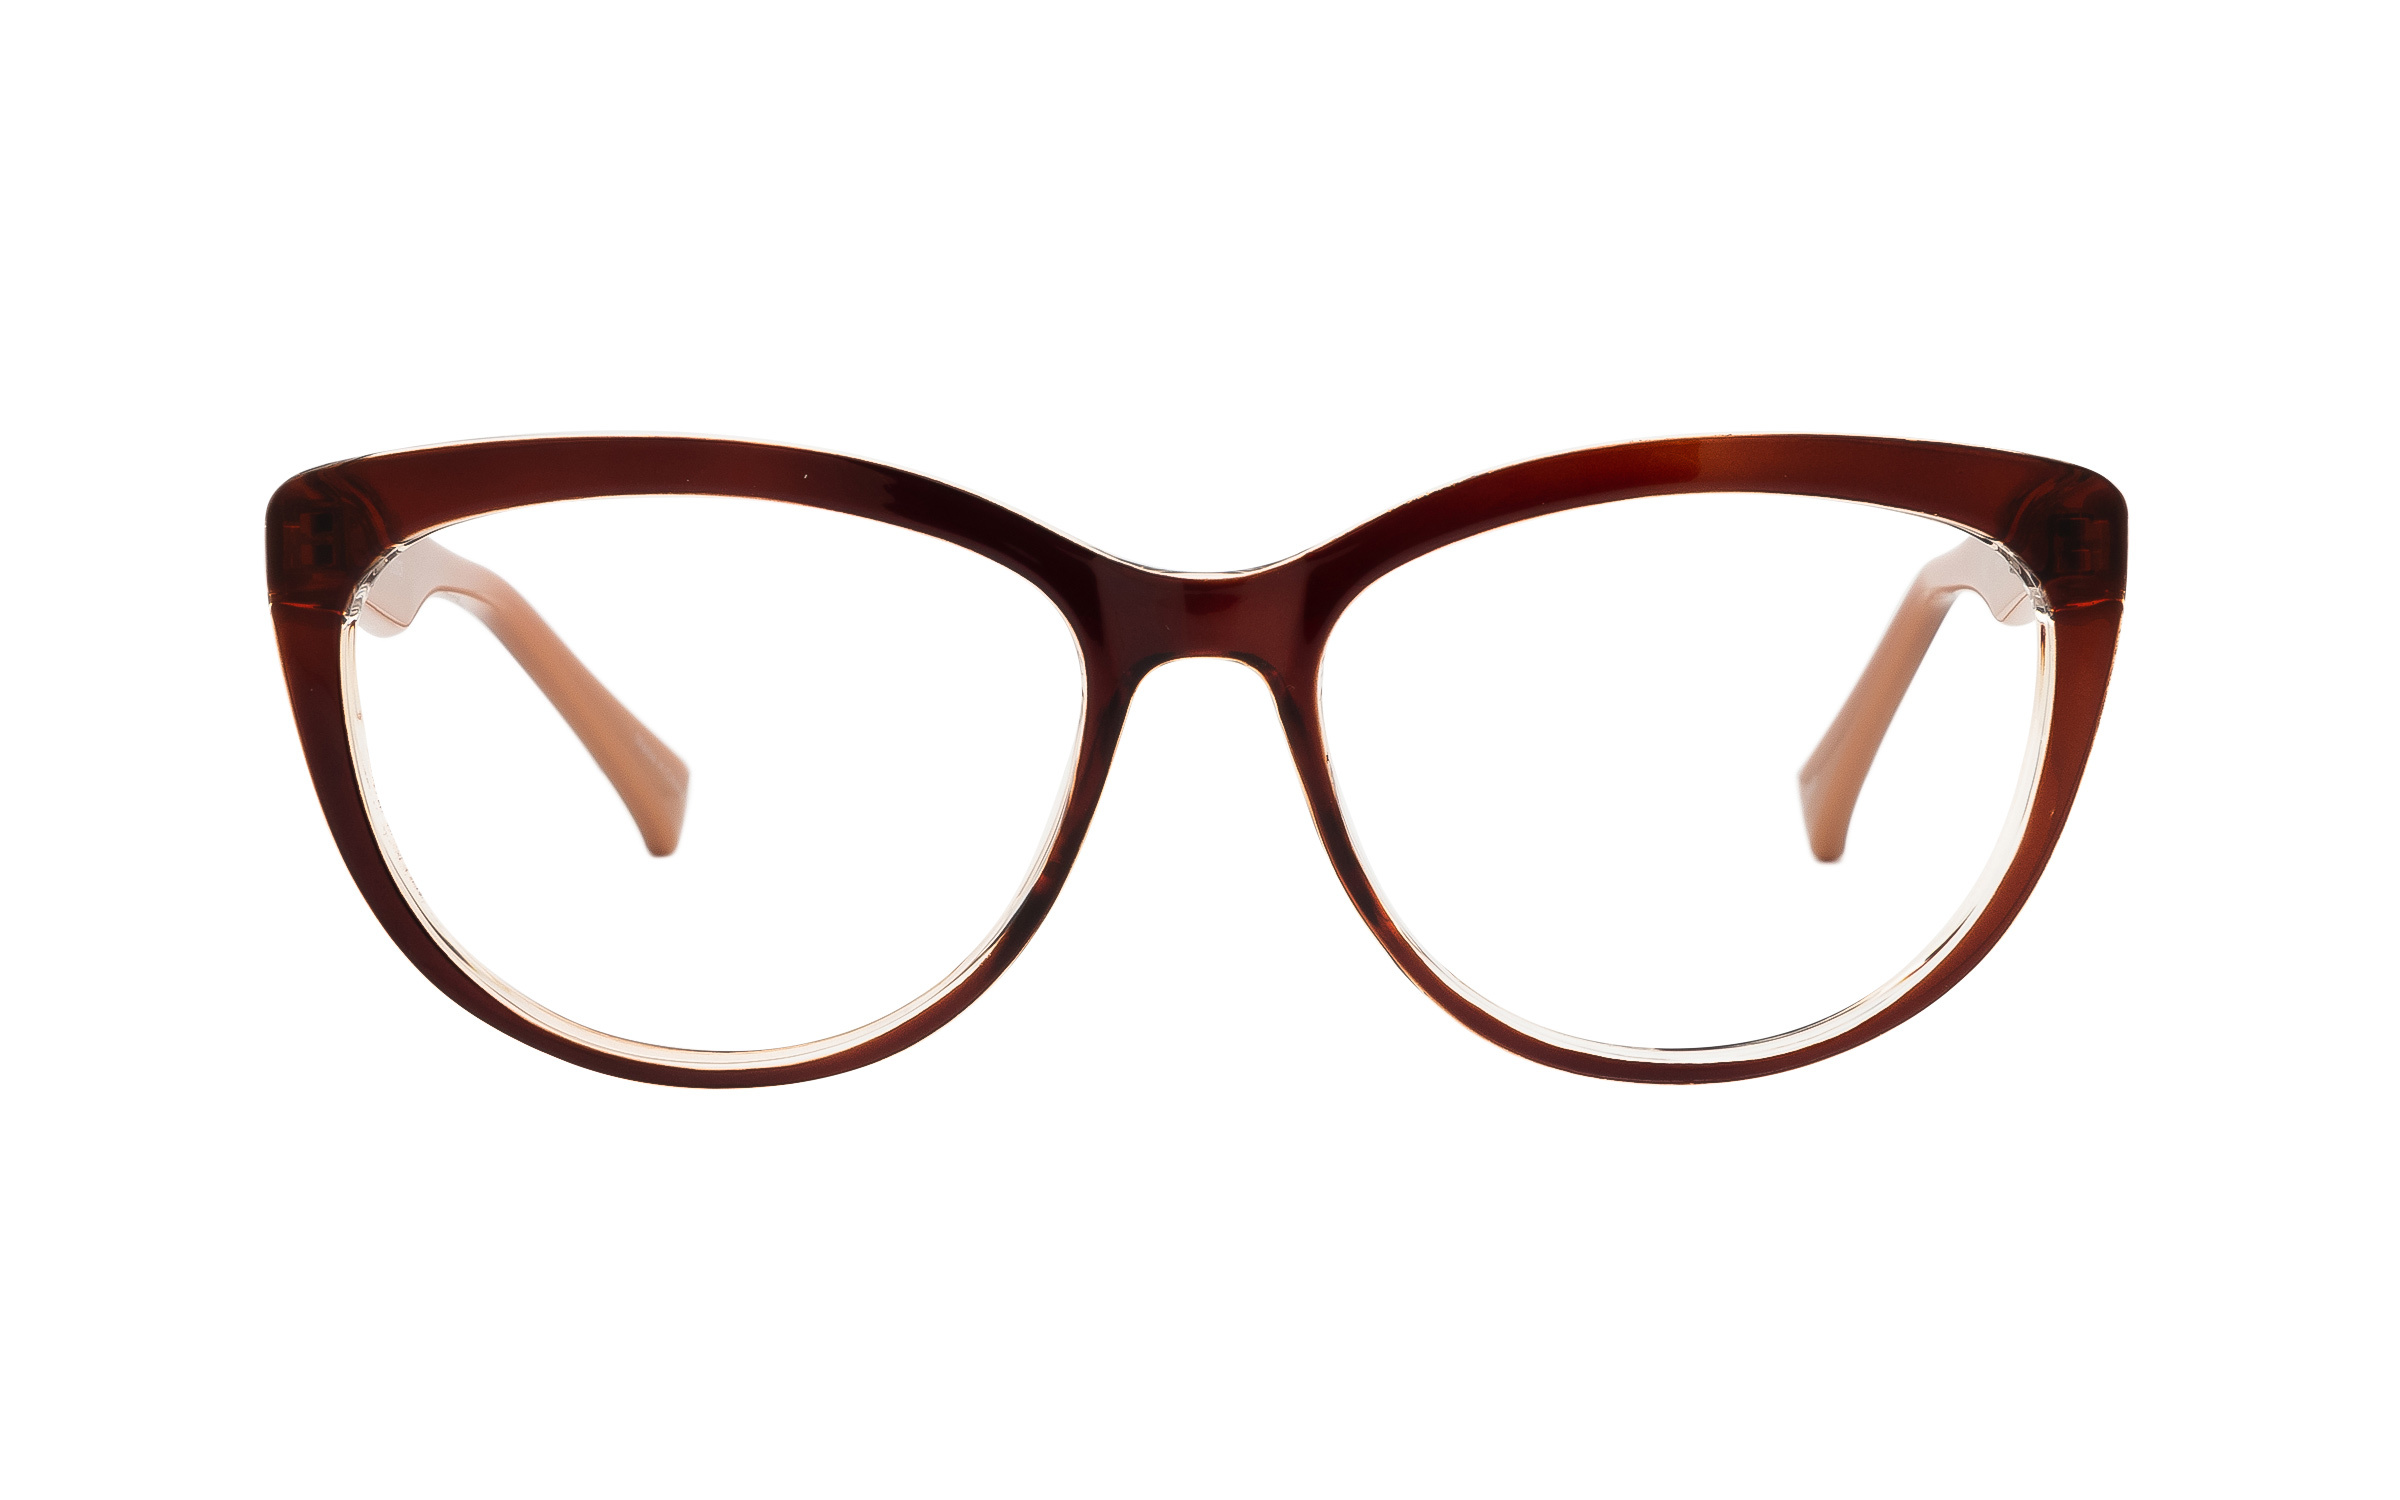 Clearly Basics Howley COL131 C02 (54) Eyeglasses and Frame in Brown - Online Coastal